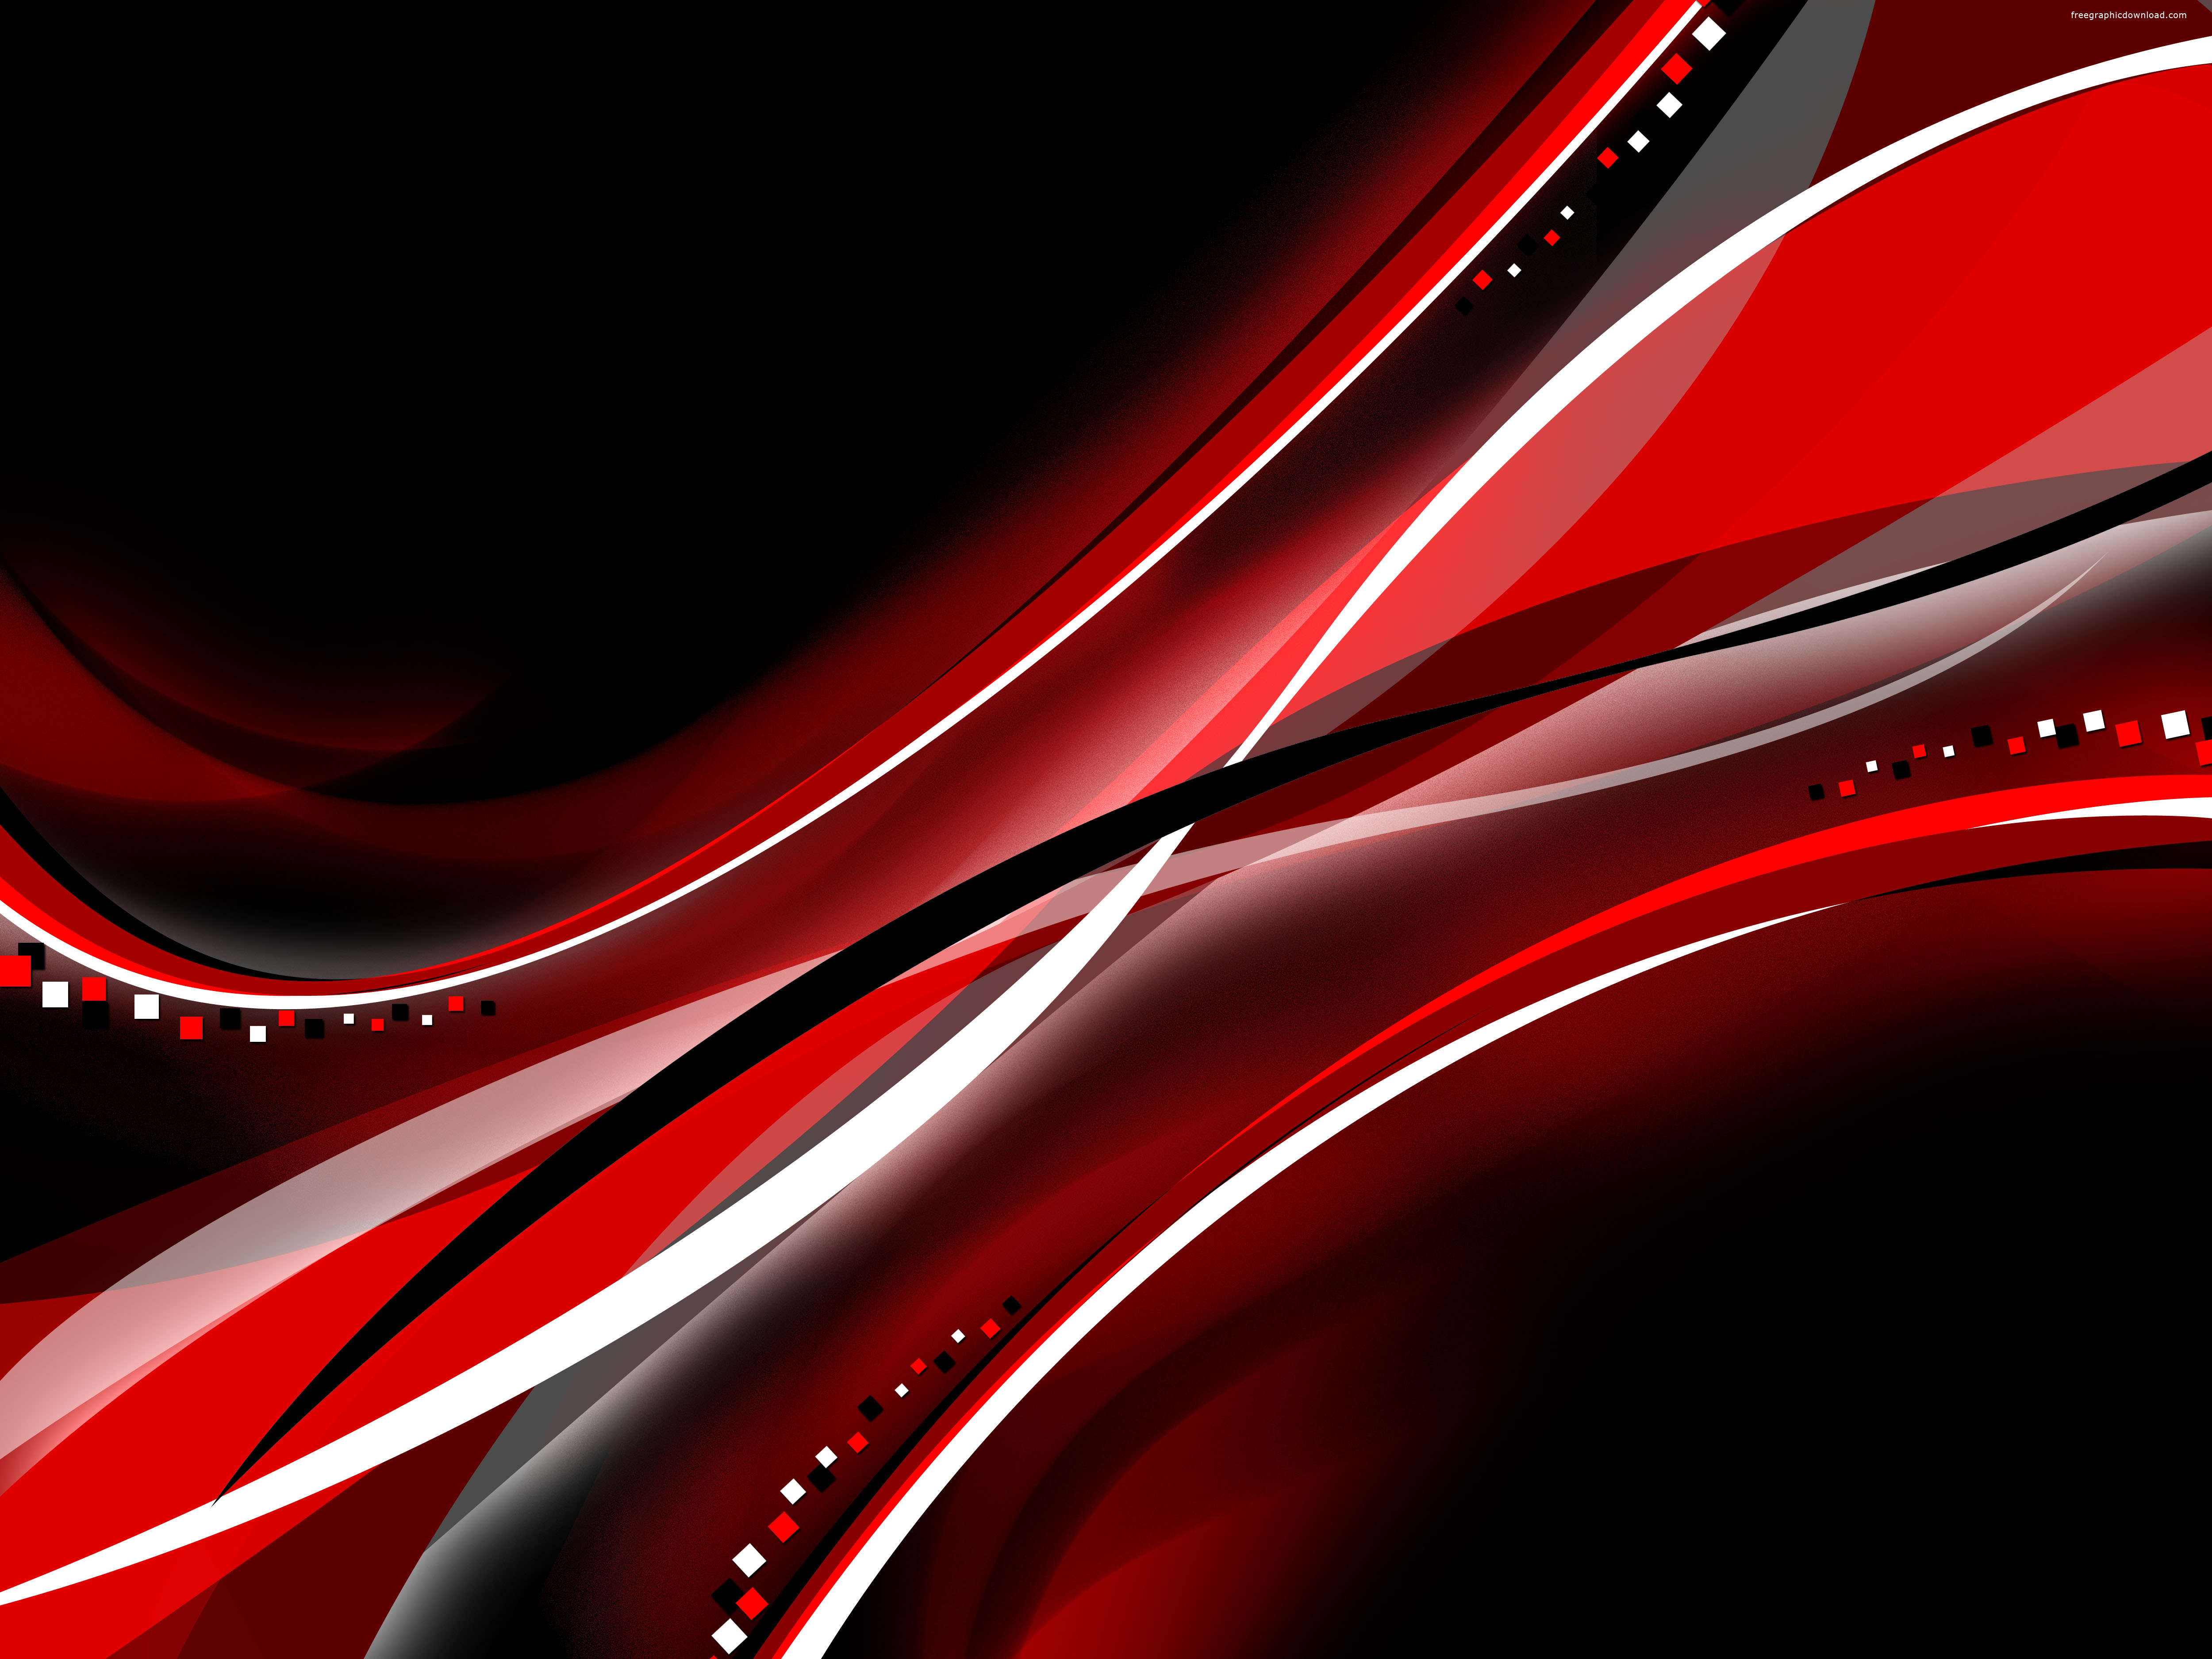 Red And Black Background Powerpoint Backgrounds For Free Powerpoint Templates